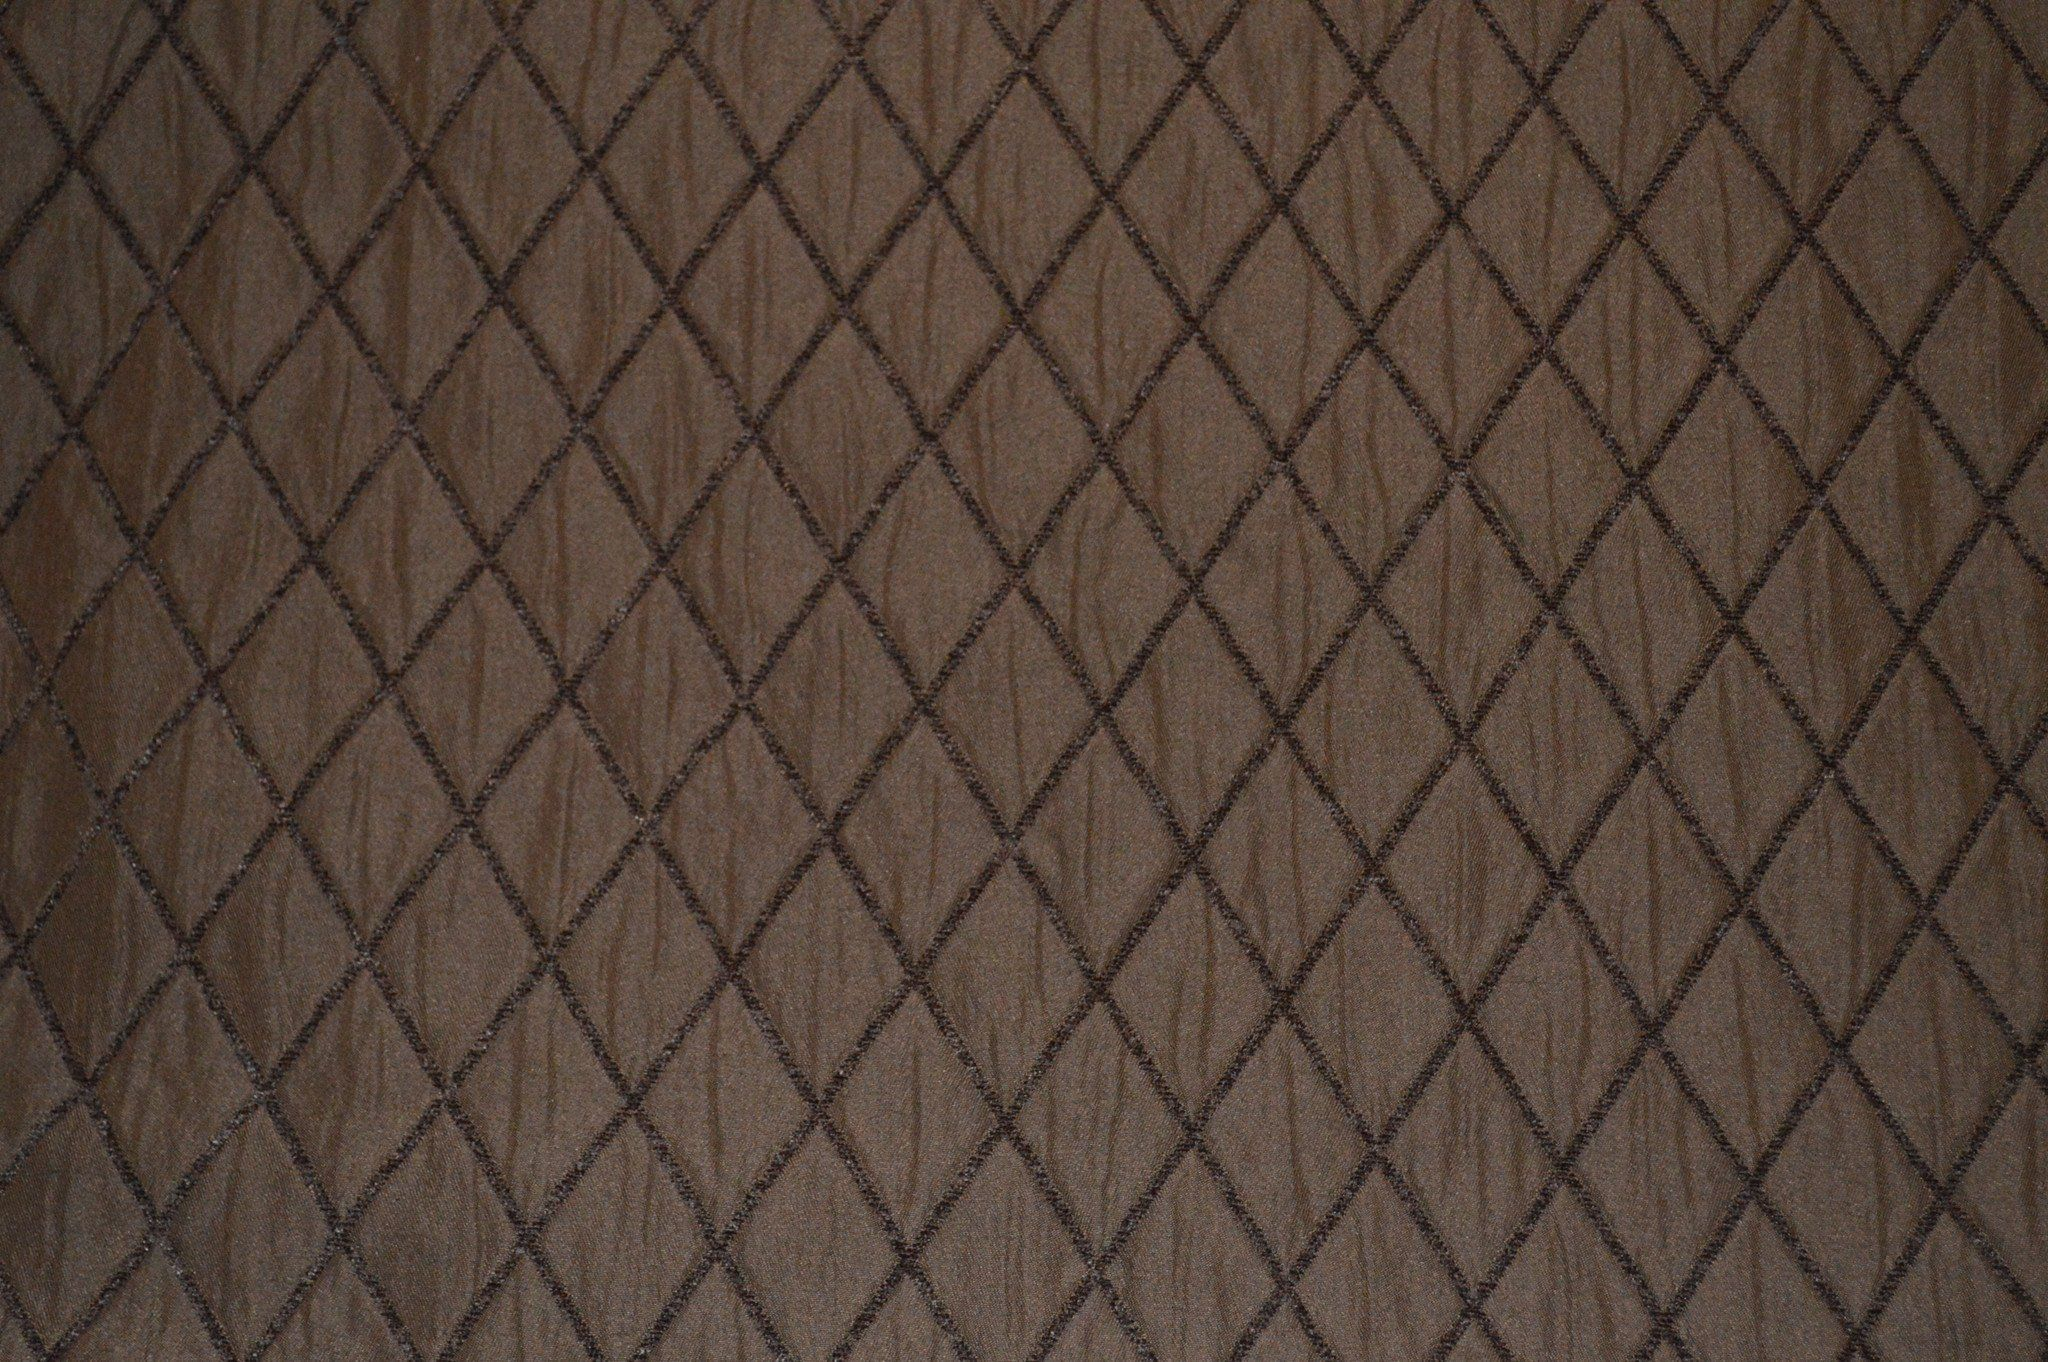 Quilted Upholstery Fabric Diamond Cocoa Sold By The Yard